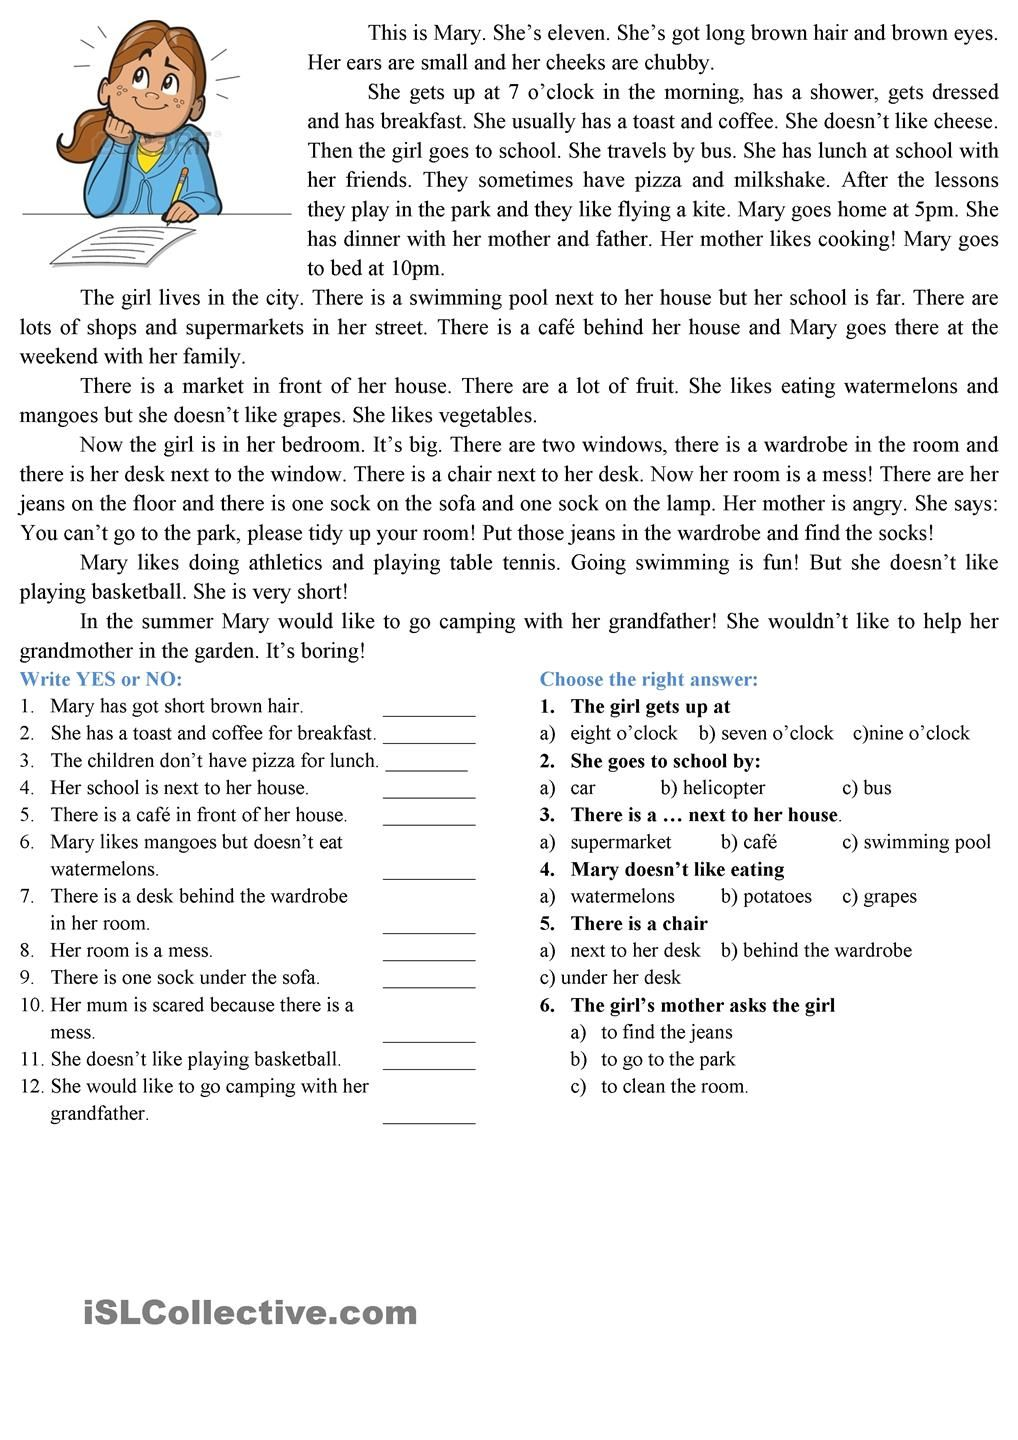 Worksheets Reading Comprehension Printable Worksheets reading comprehension esl worksheets of the day pinterest comprehension